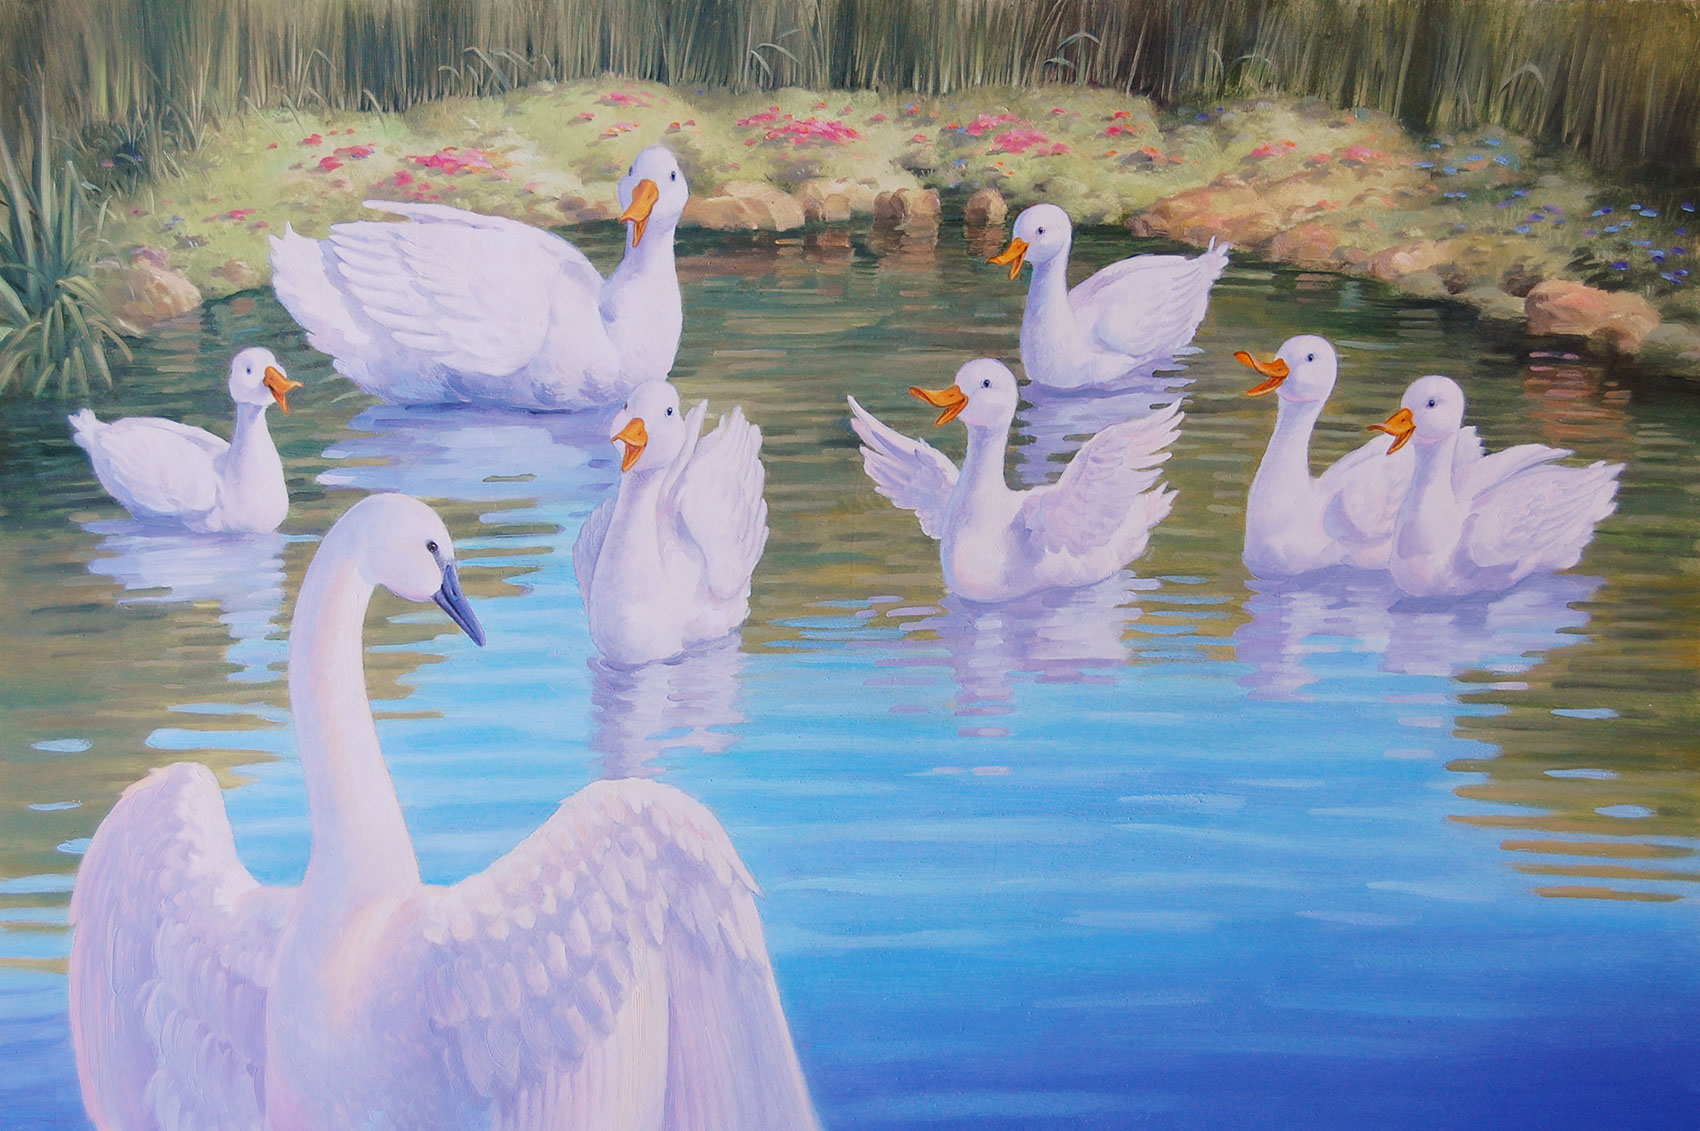 illustration-Animals and Nature_Ducks in the pond-Mike Jaroszko